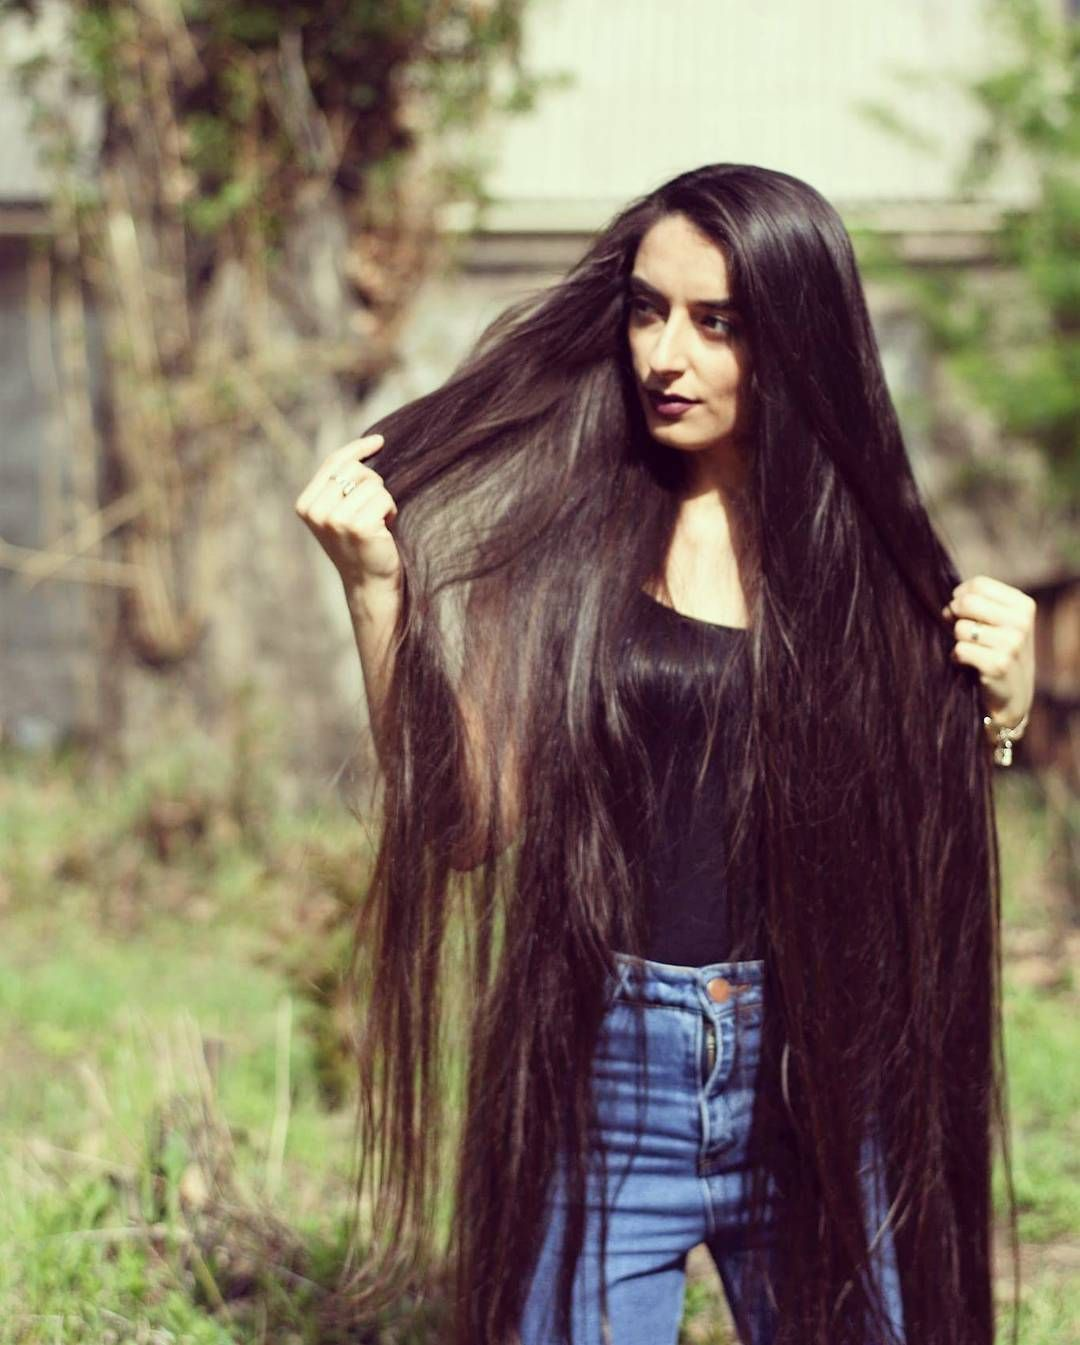 34 2k Followers 169 Following 288 Posts See Instagram Photos And Videos From Gohar Shahnazaryan Gohar S Long Silky Hair Long Hair Models Long Hair Styles